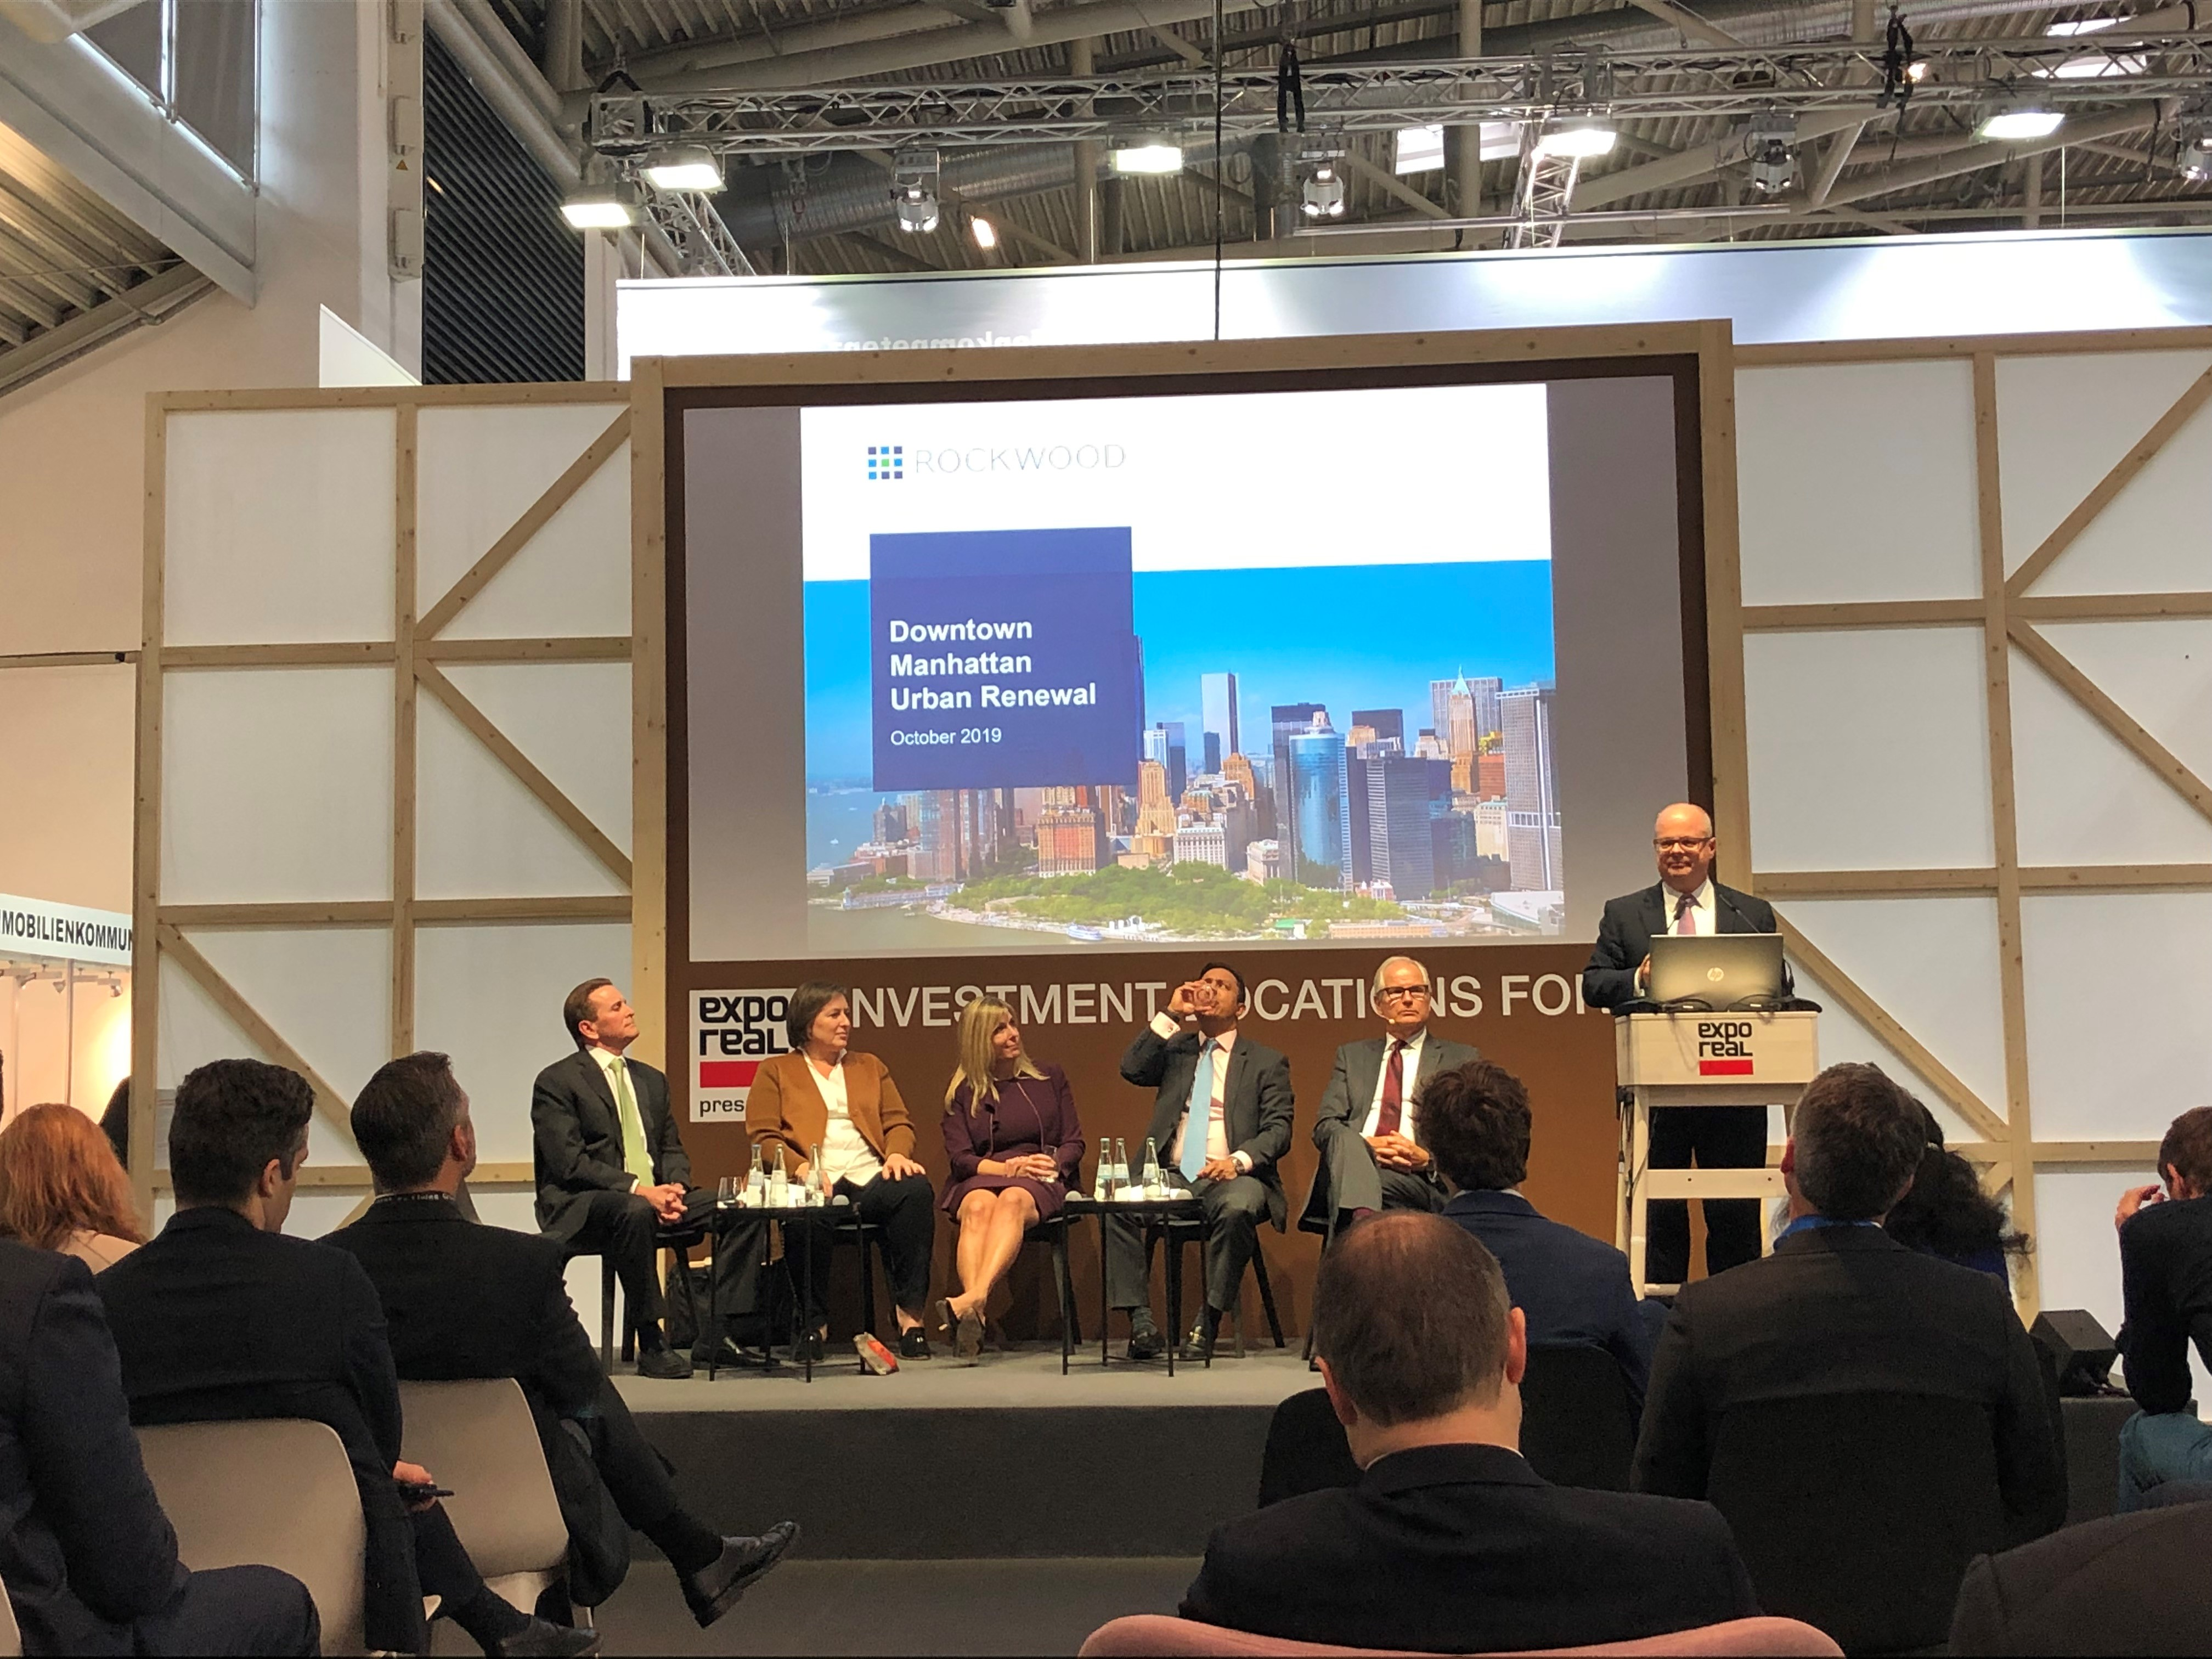 """""""The U.S. Real Estate Market: What's Next?"""" panel at Expo Real 2019"""